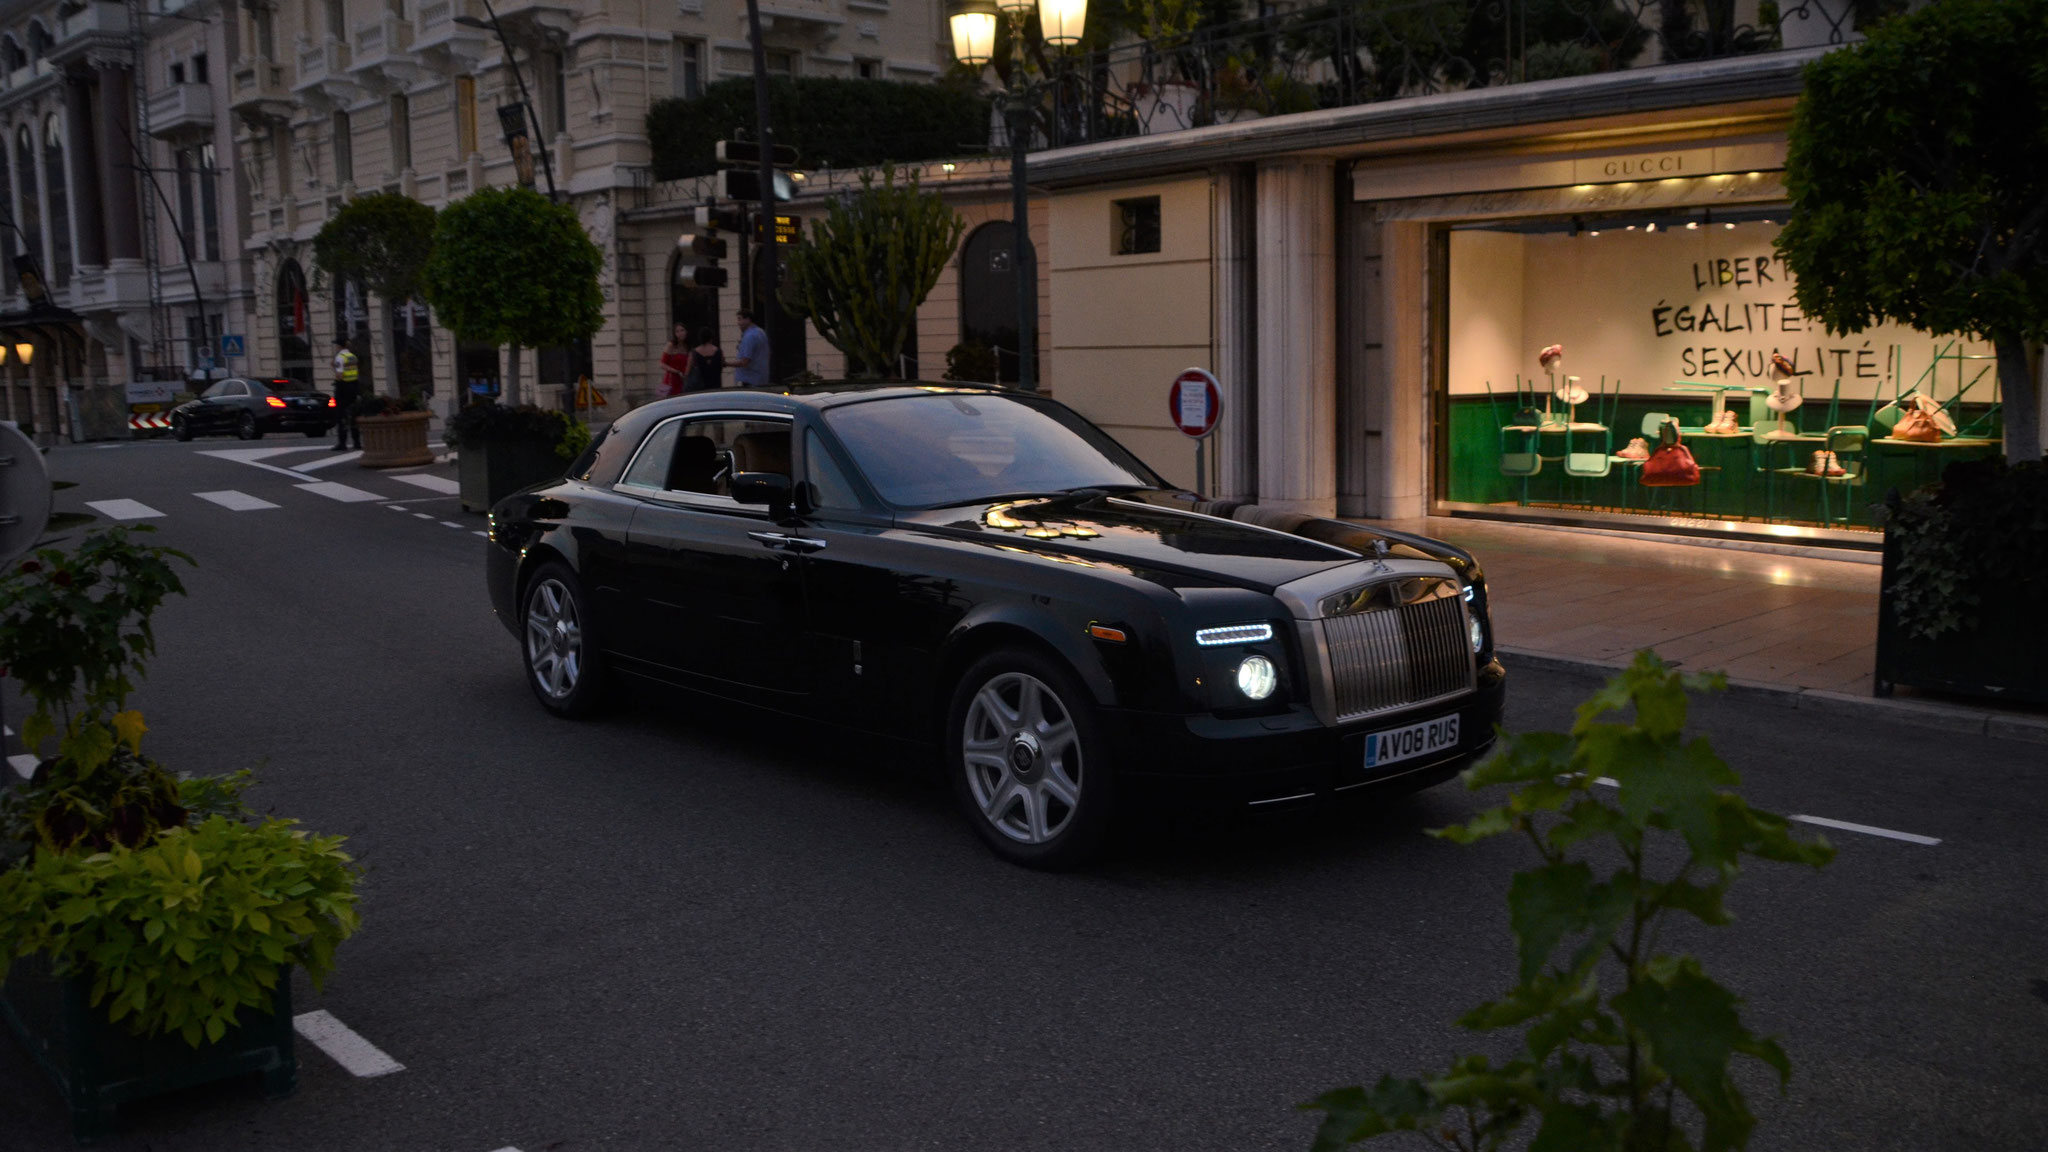 Rolls Royce Drophead Coupé - AV08-RUS (GB)